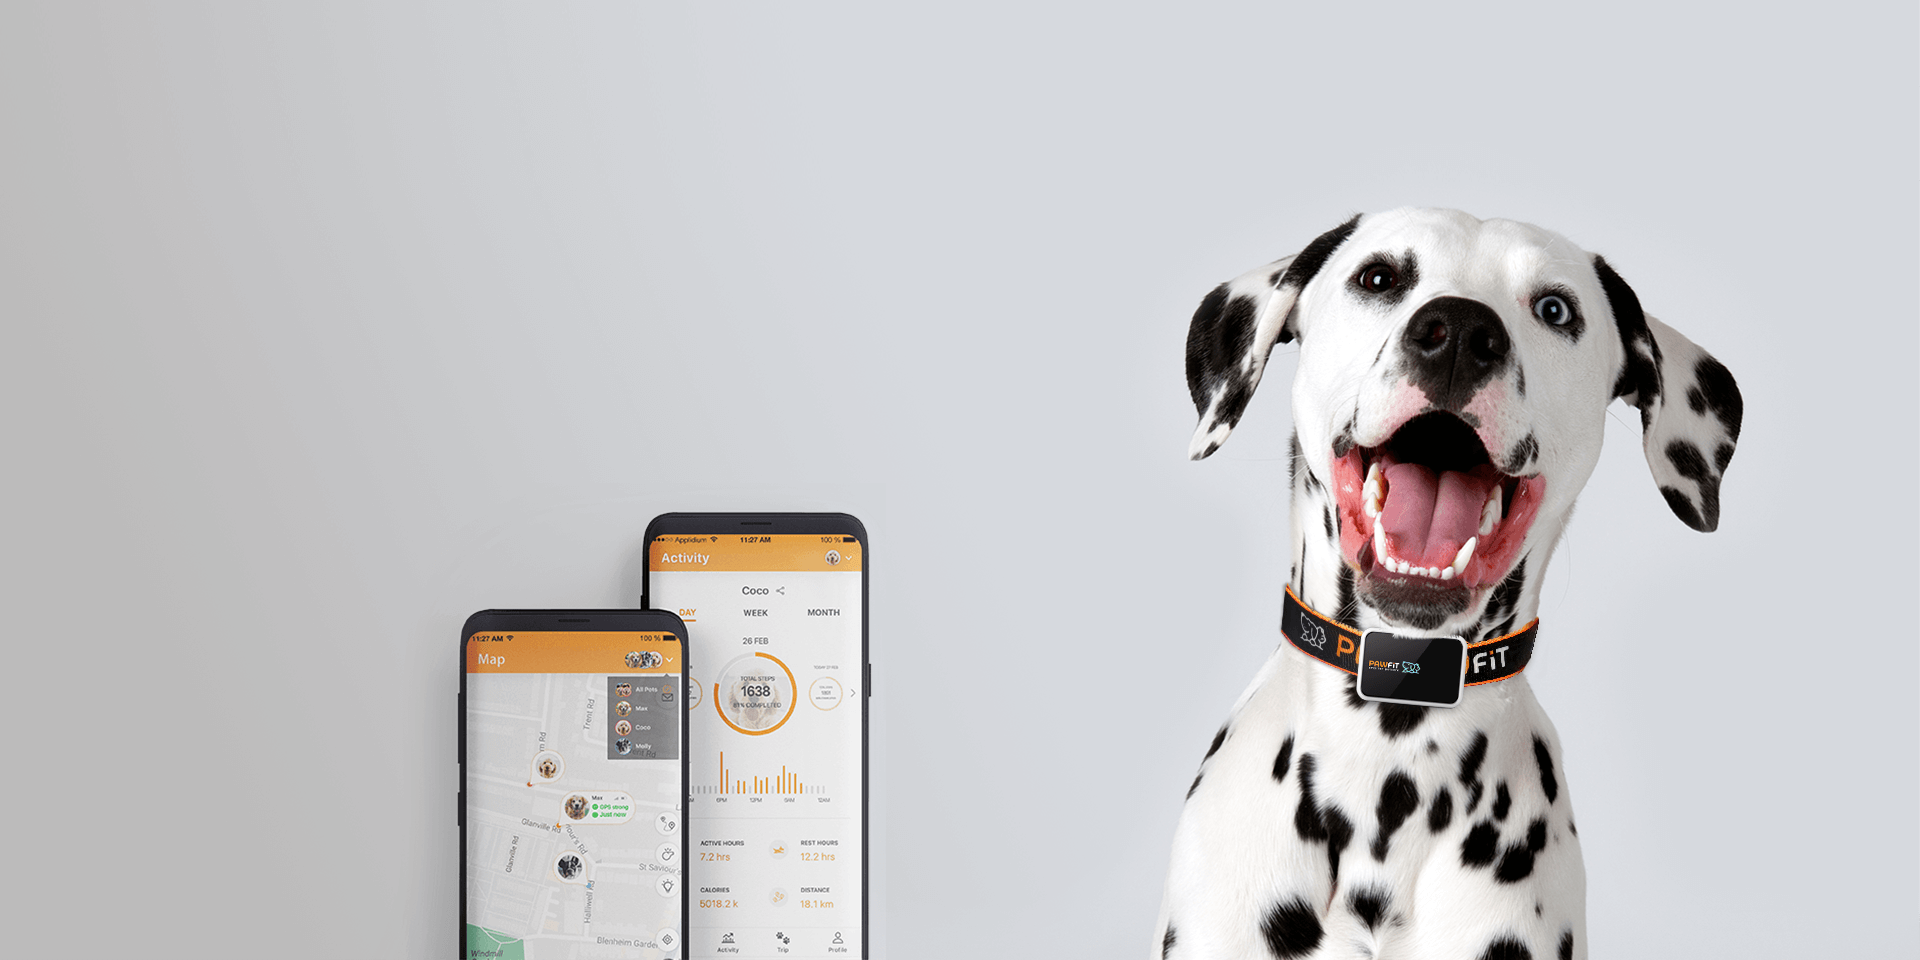 Pawfit gps & fitness dog collar, Pawfit APP with fast tracking and activity statistics features